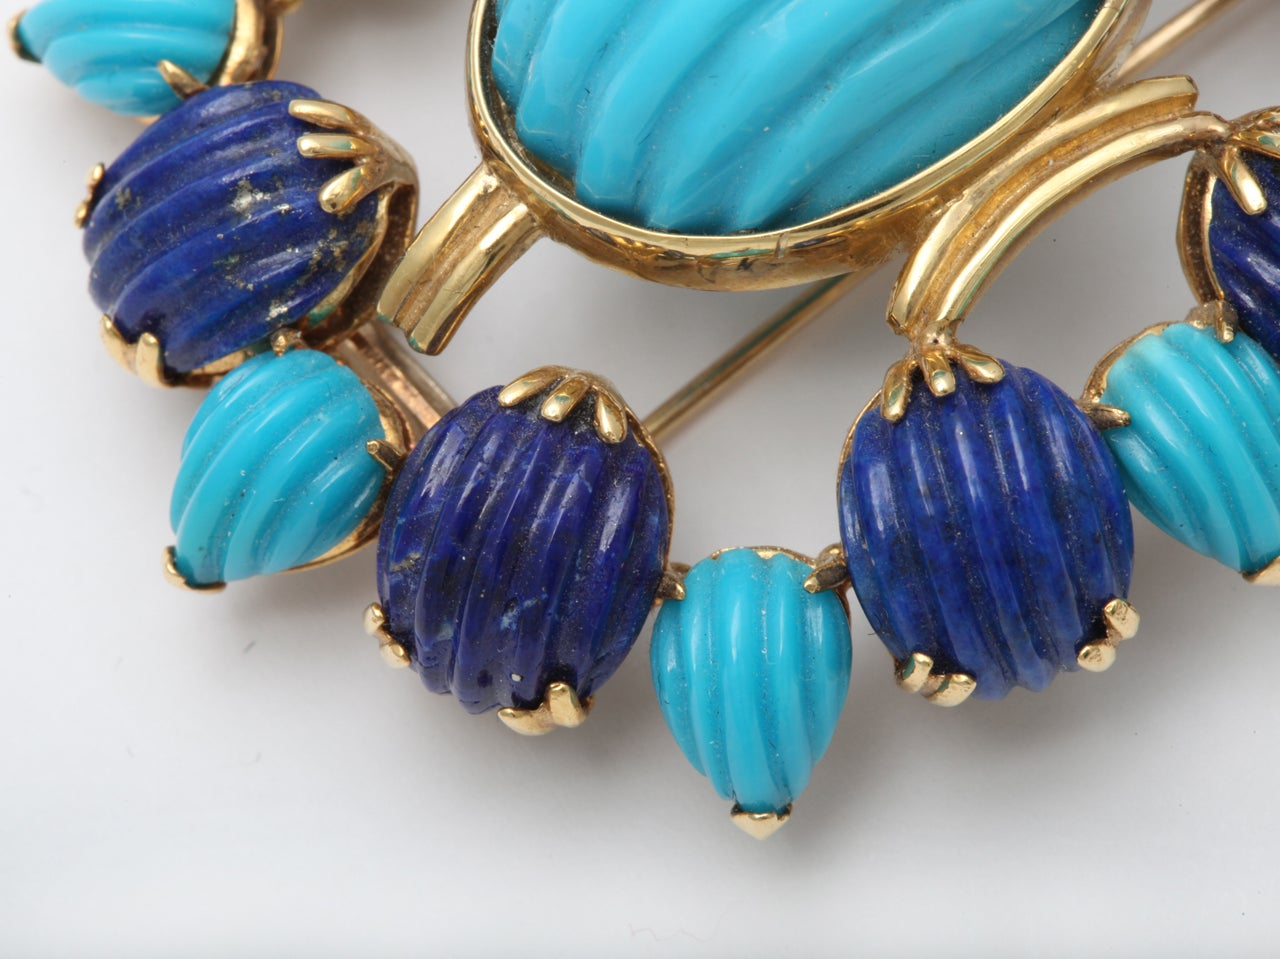 Melon Shaped Turquoise & Lapis  Egyptian Revival Brooch image 5